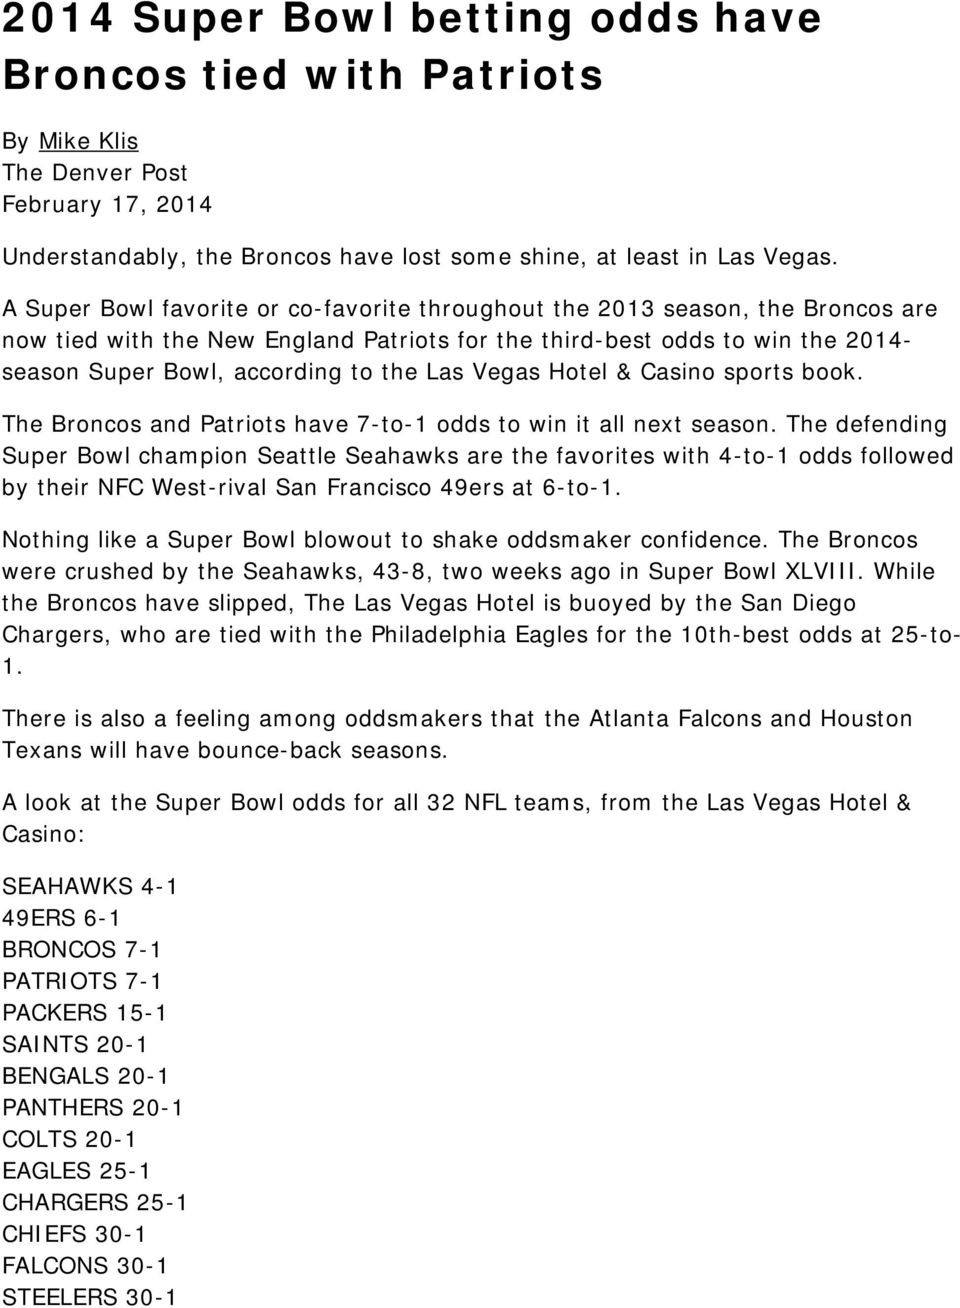 Las Vegas Hotel & Casino sports book. The Broncos and Patriots have 7-to-1 odds to win it all next season.